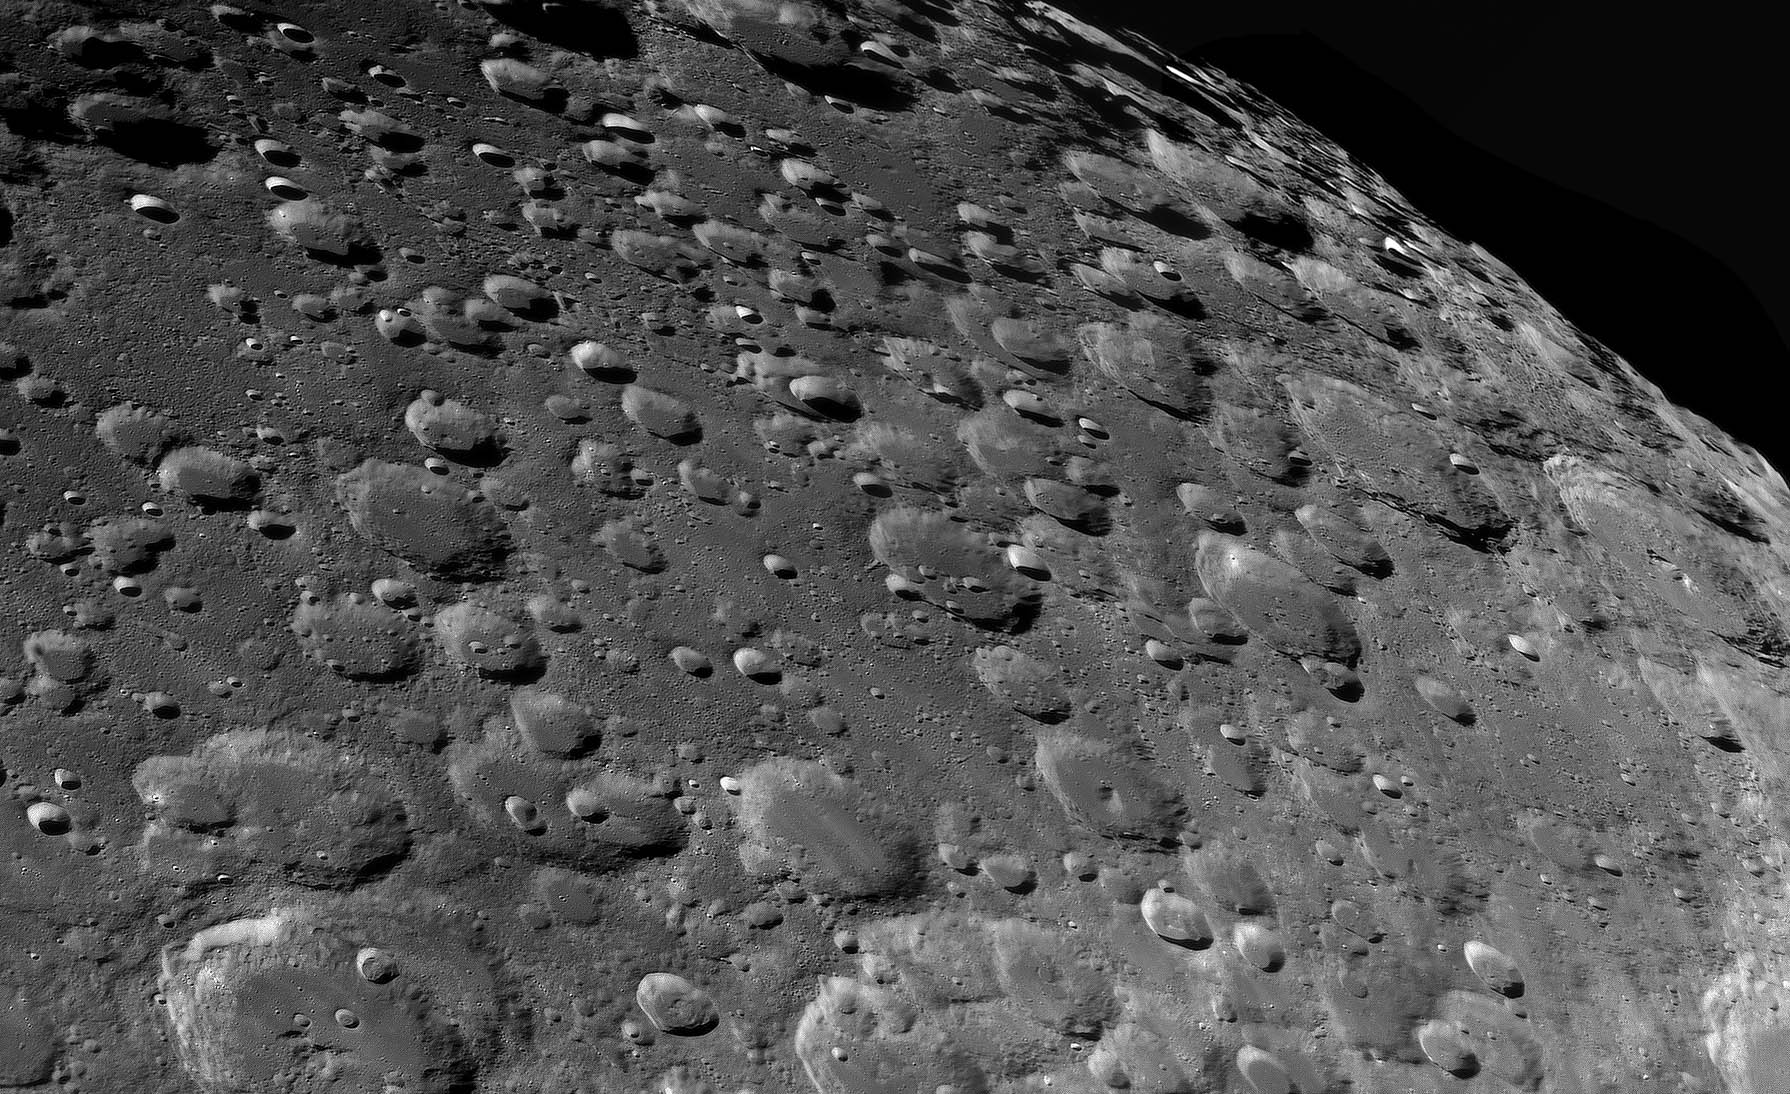 Our Moon: This is the moon of our dreams,  Jordi writes of his image, taken from L'Ametlla del Vallès in Barcelona, Spain. It shows the southern region of the lunar surface and features a number of impact craters, such as Barocius, Baco, Cuvier, Lillius, and Jacobi.